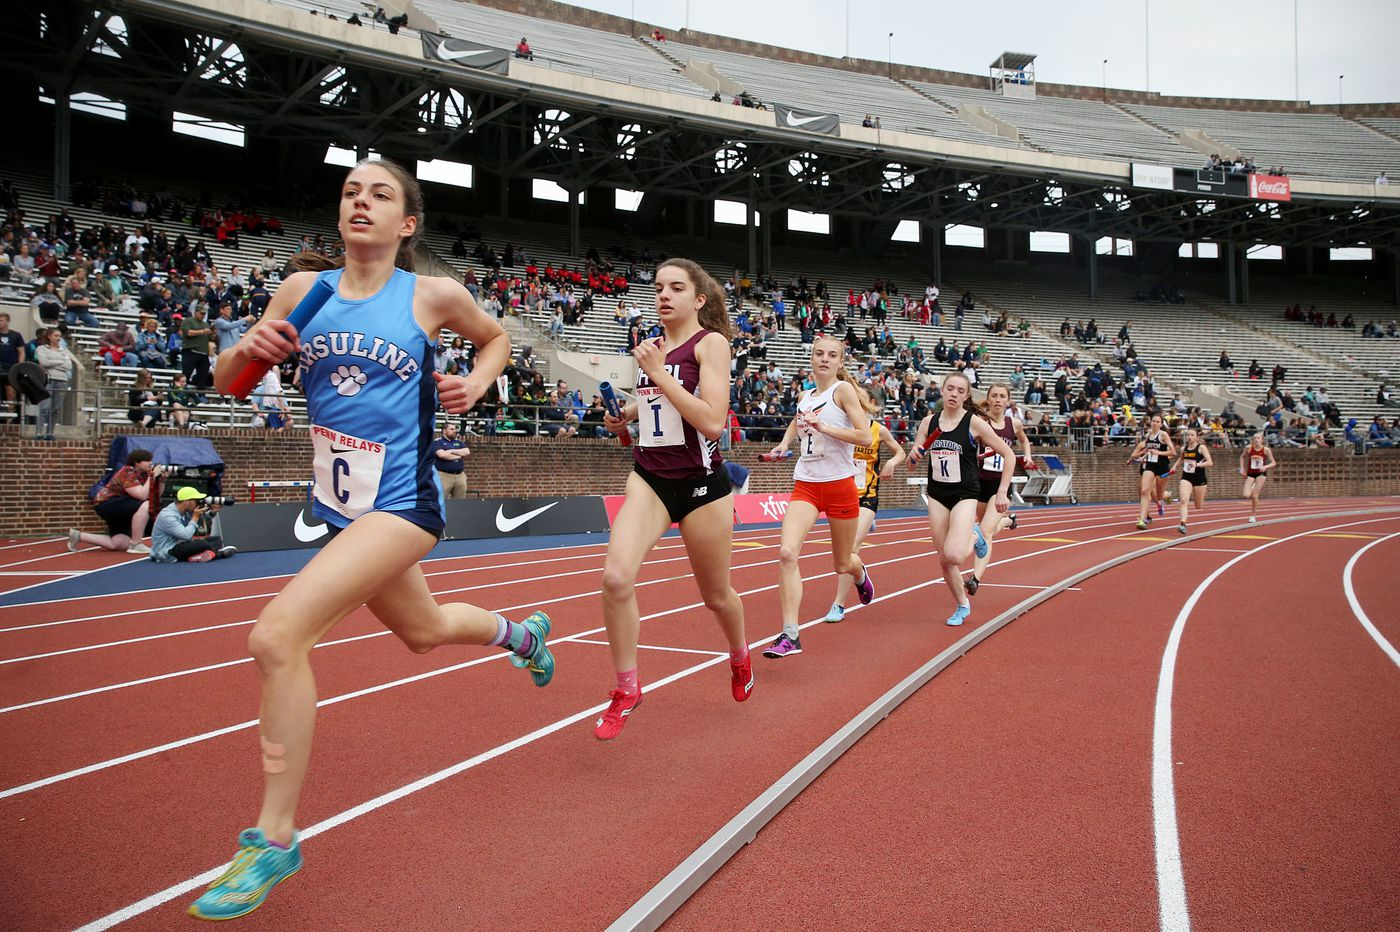 Penn Relays 2019: All of Friday's action at Franklin Field